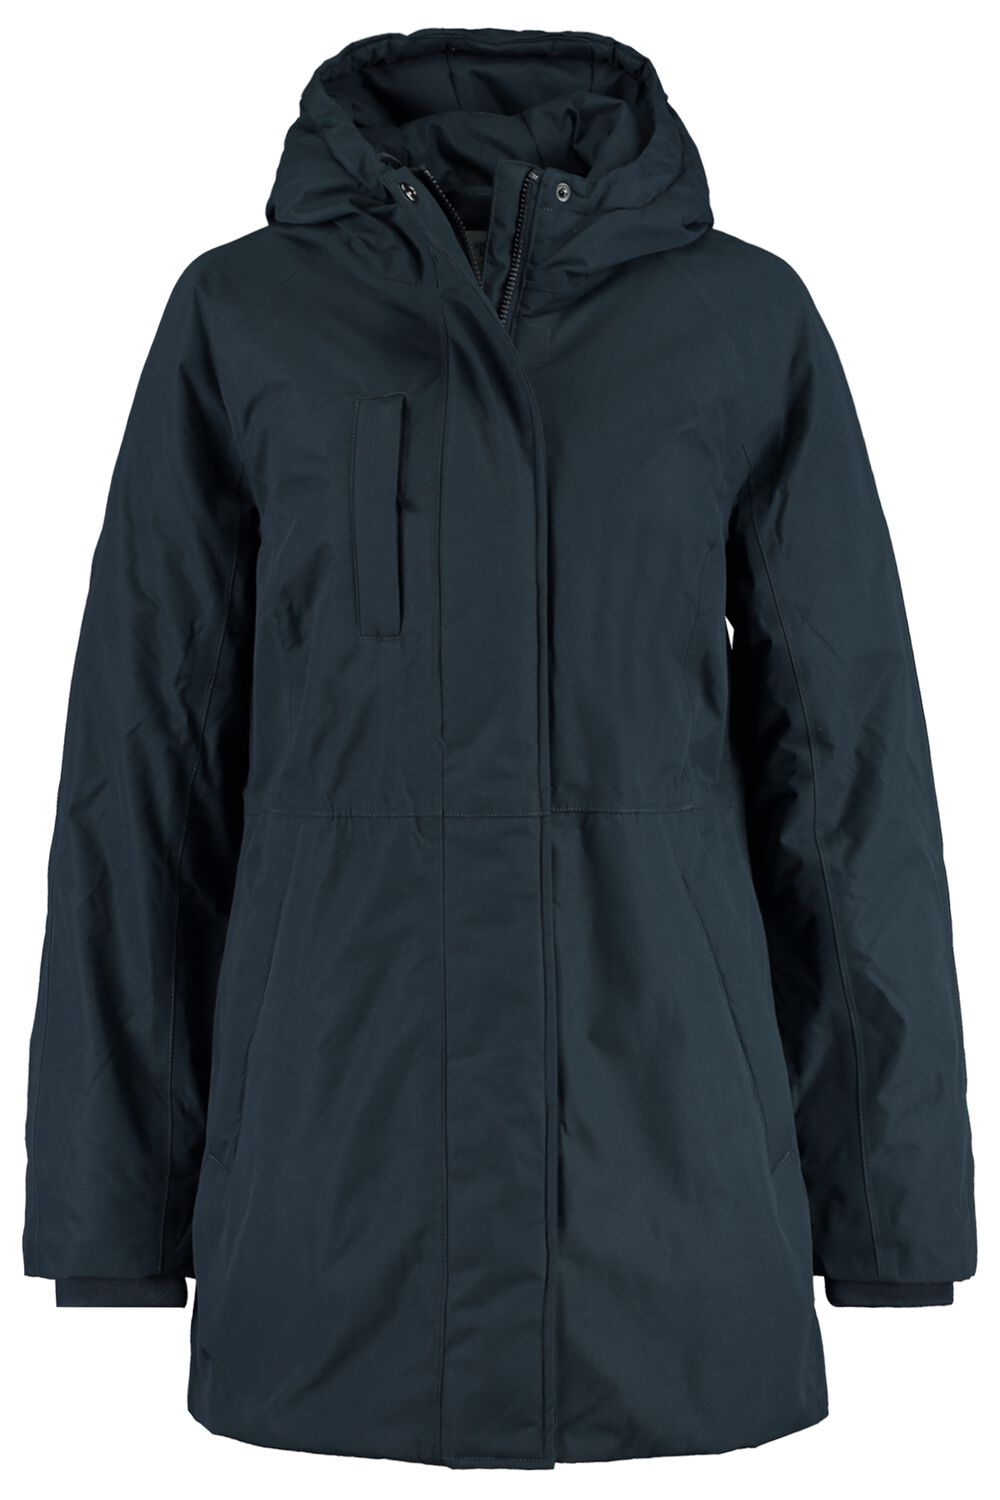 Parka Winterjas Gerecycled Polyester Blauw